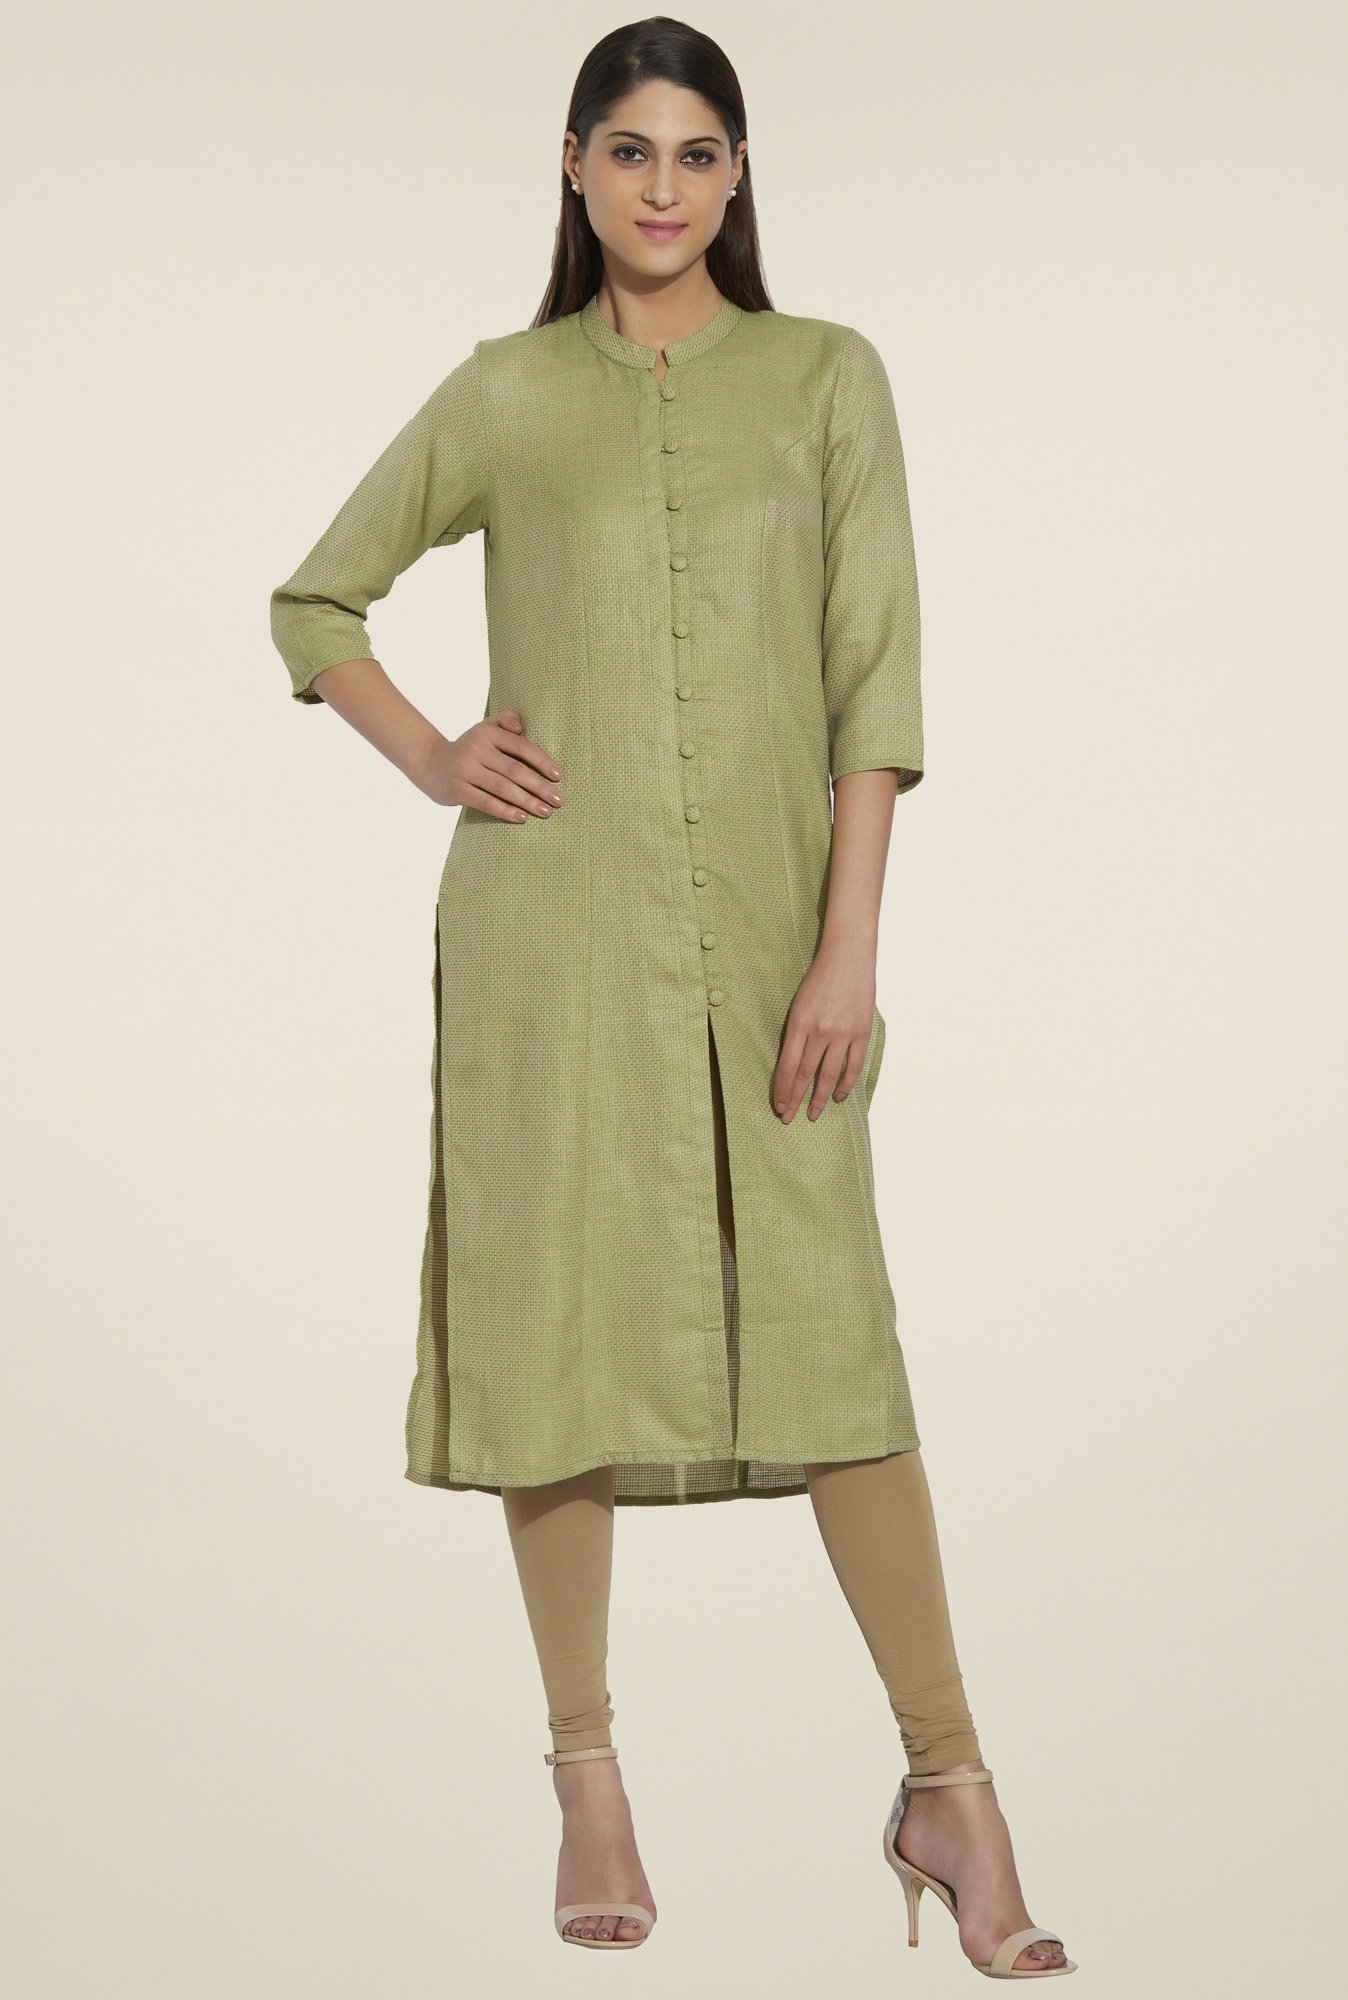 Globus Olive Regular Fit Kurta